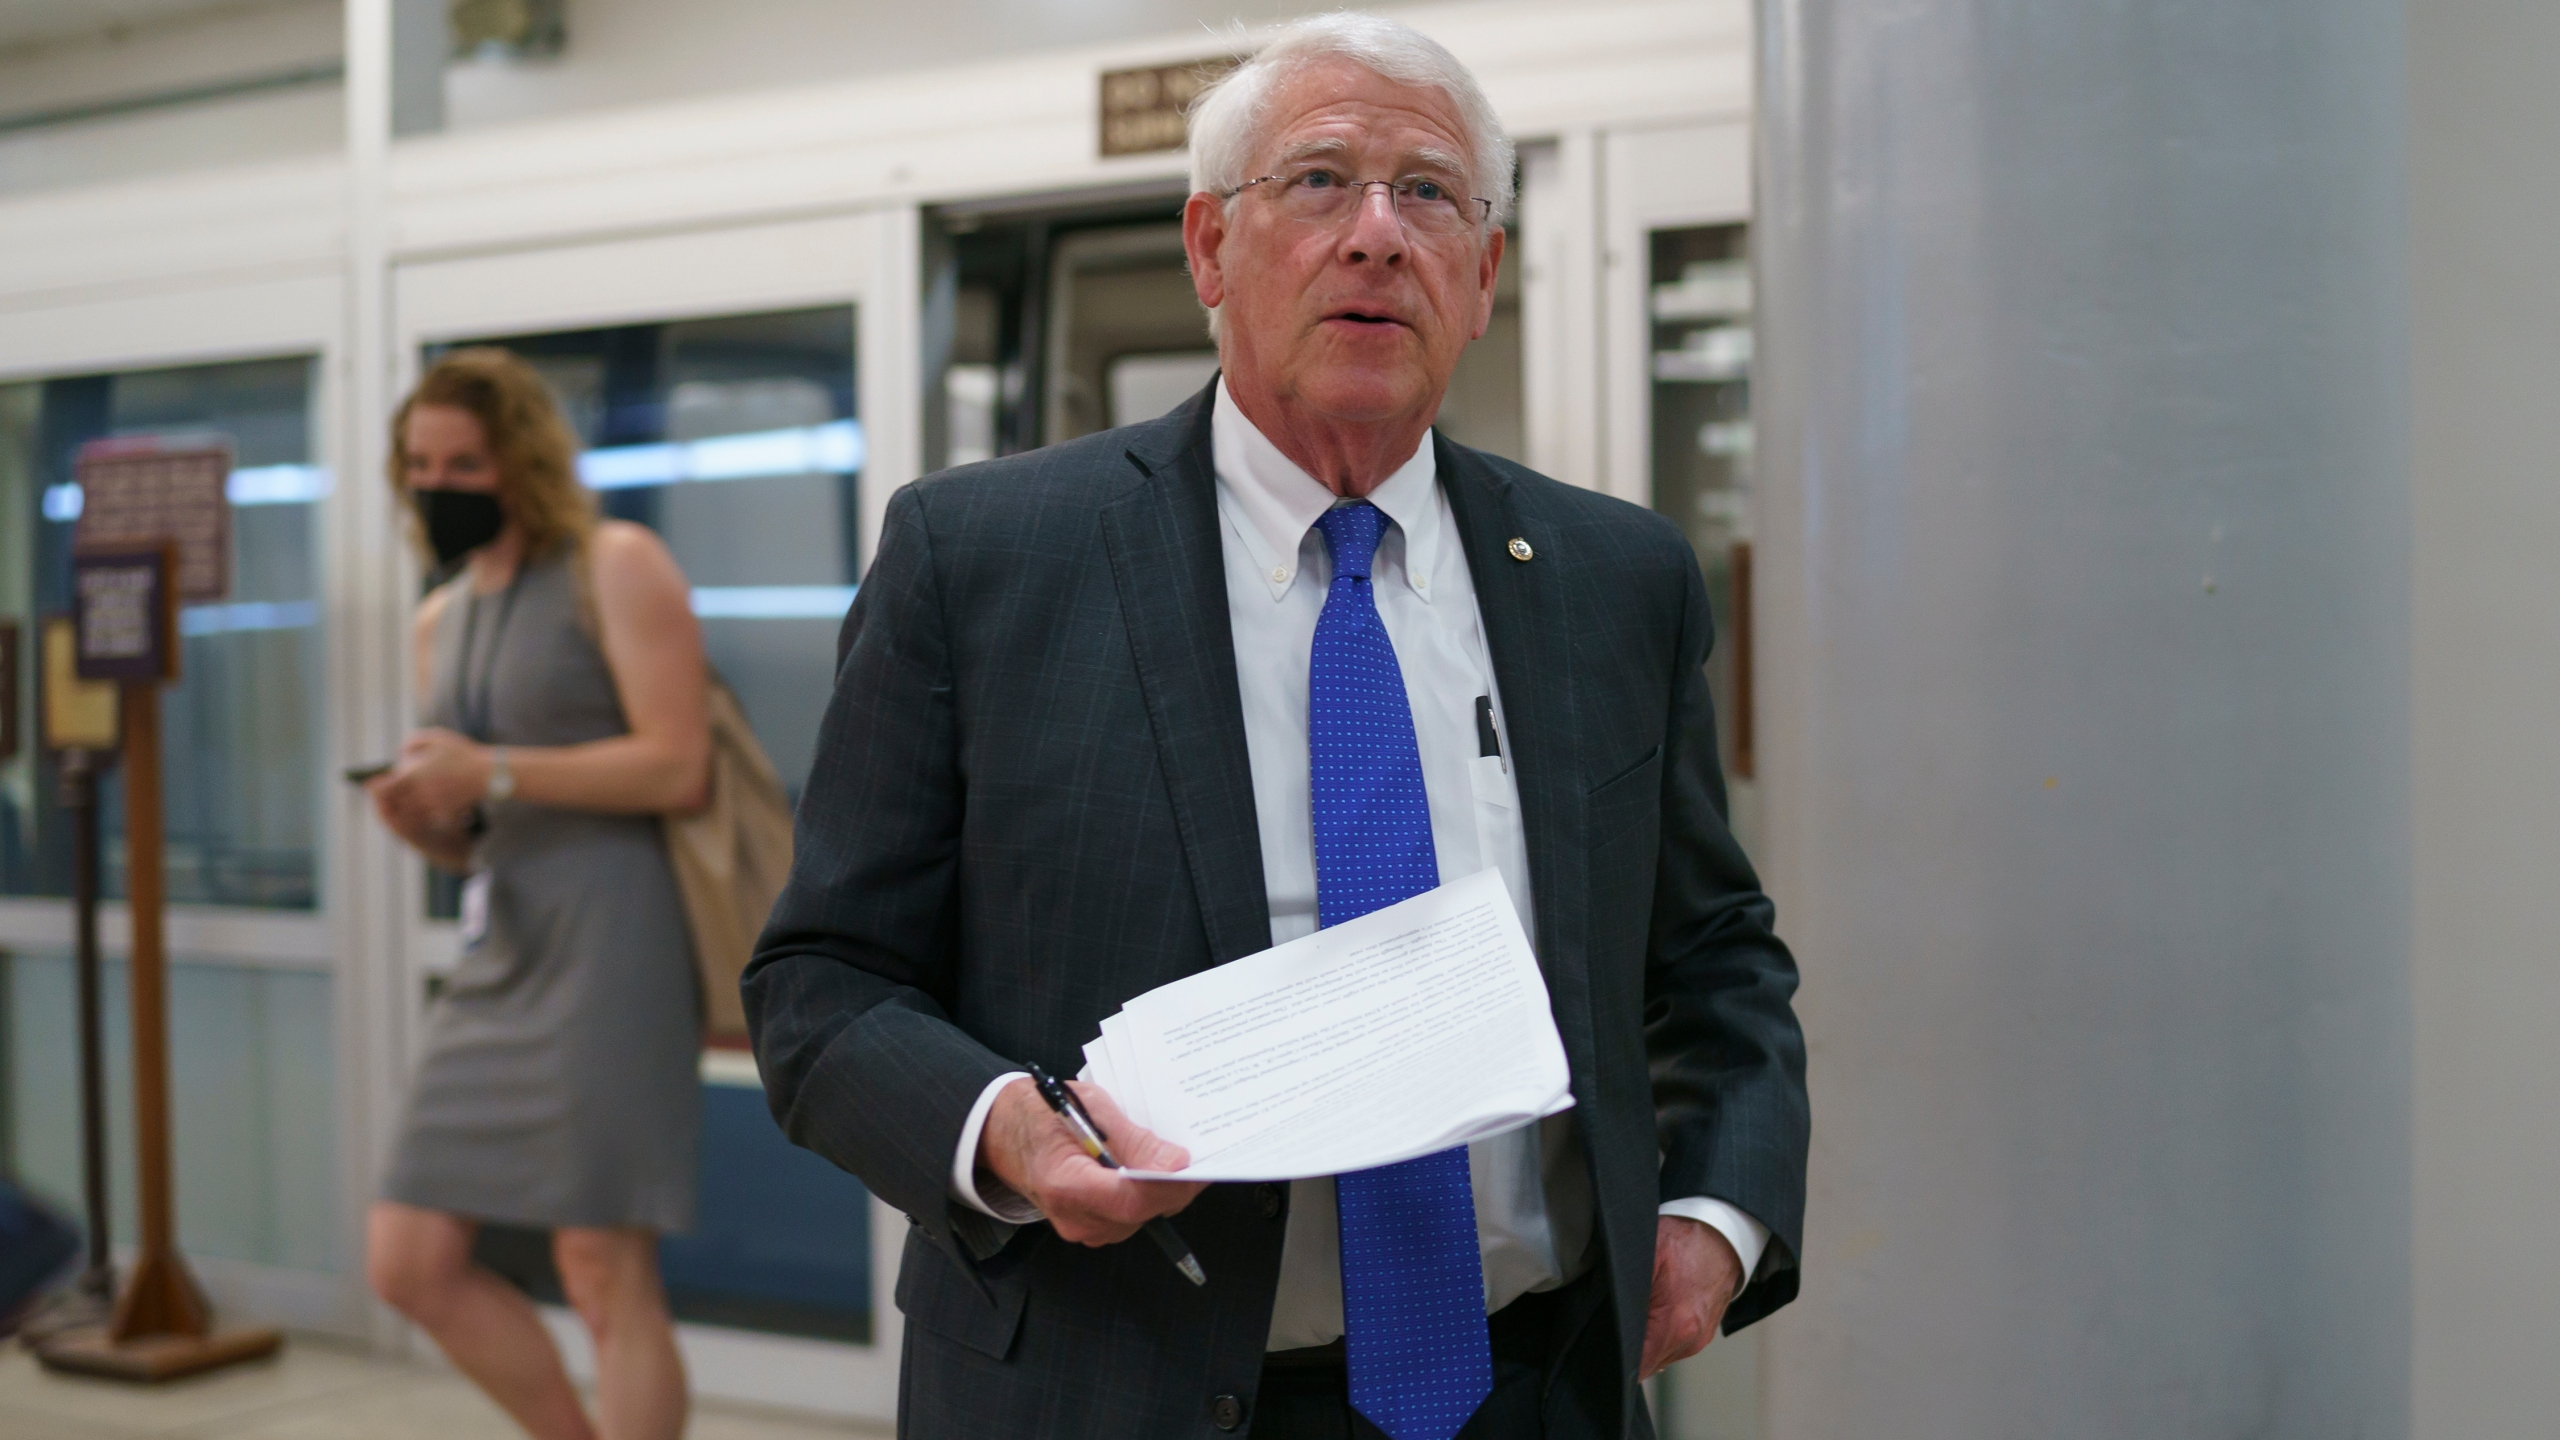 In this Thursday, May 27, 2021 file photo, Sen. Roger Wicker, R-Miss., arrives as senators go to the chamber for votes ahead of the approaching Memorial Day recess, at the Capitol in Washington. Republican Sen. Roger Wicker of Mississippi says installing massive pumps to drain water from the south Mississippi Delta would be a way to fight environmental injustice. He says the project would help low-income and minority residents whose lives are disrupted by flooding. Wicker made his statements to a Senate subcommittee Thursday, July 22, 2021. (AP Photo/J. Scott Applewhite, File)